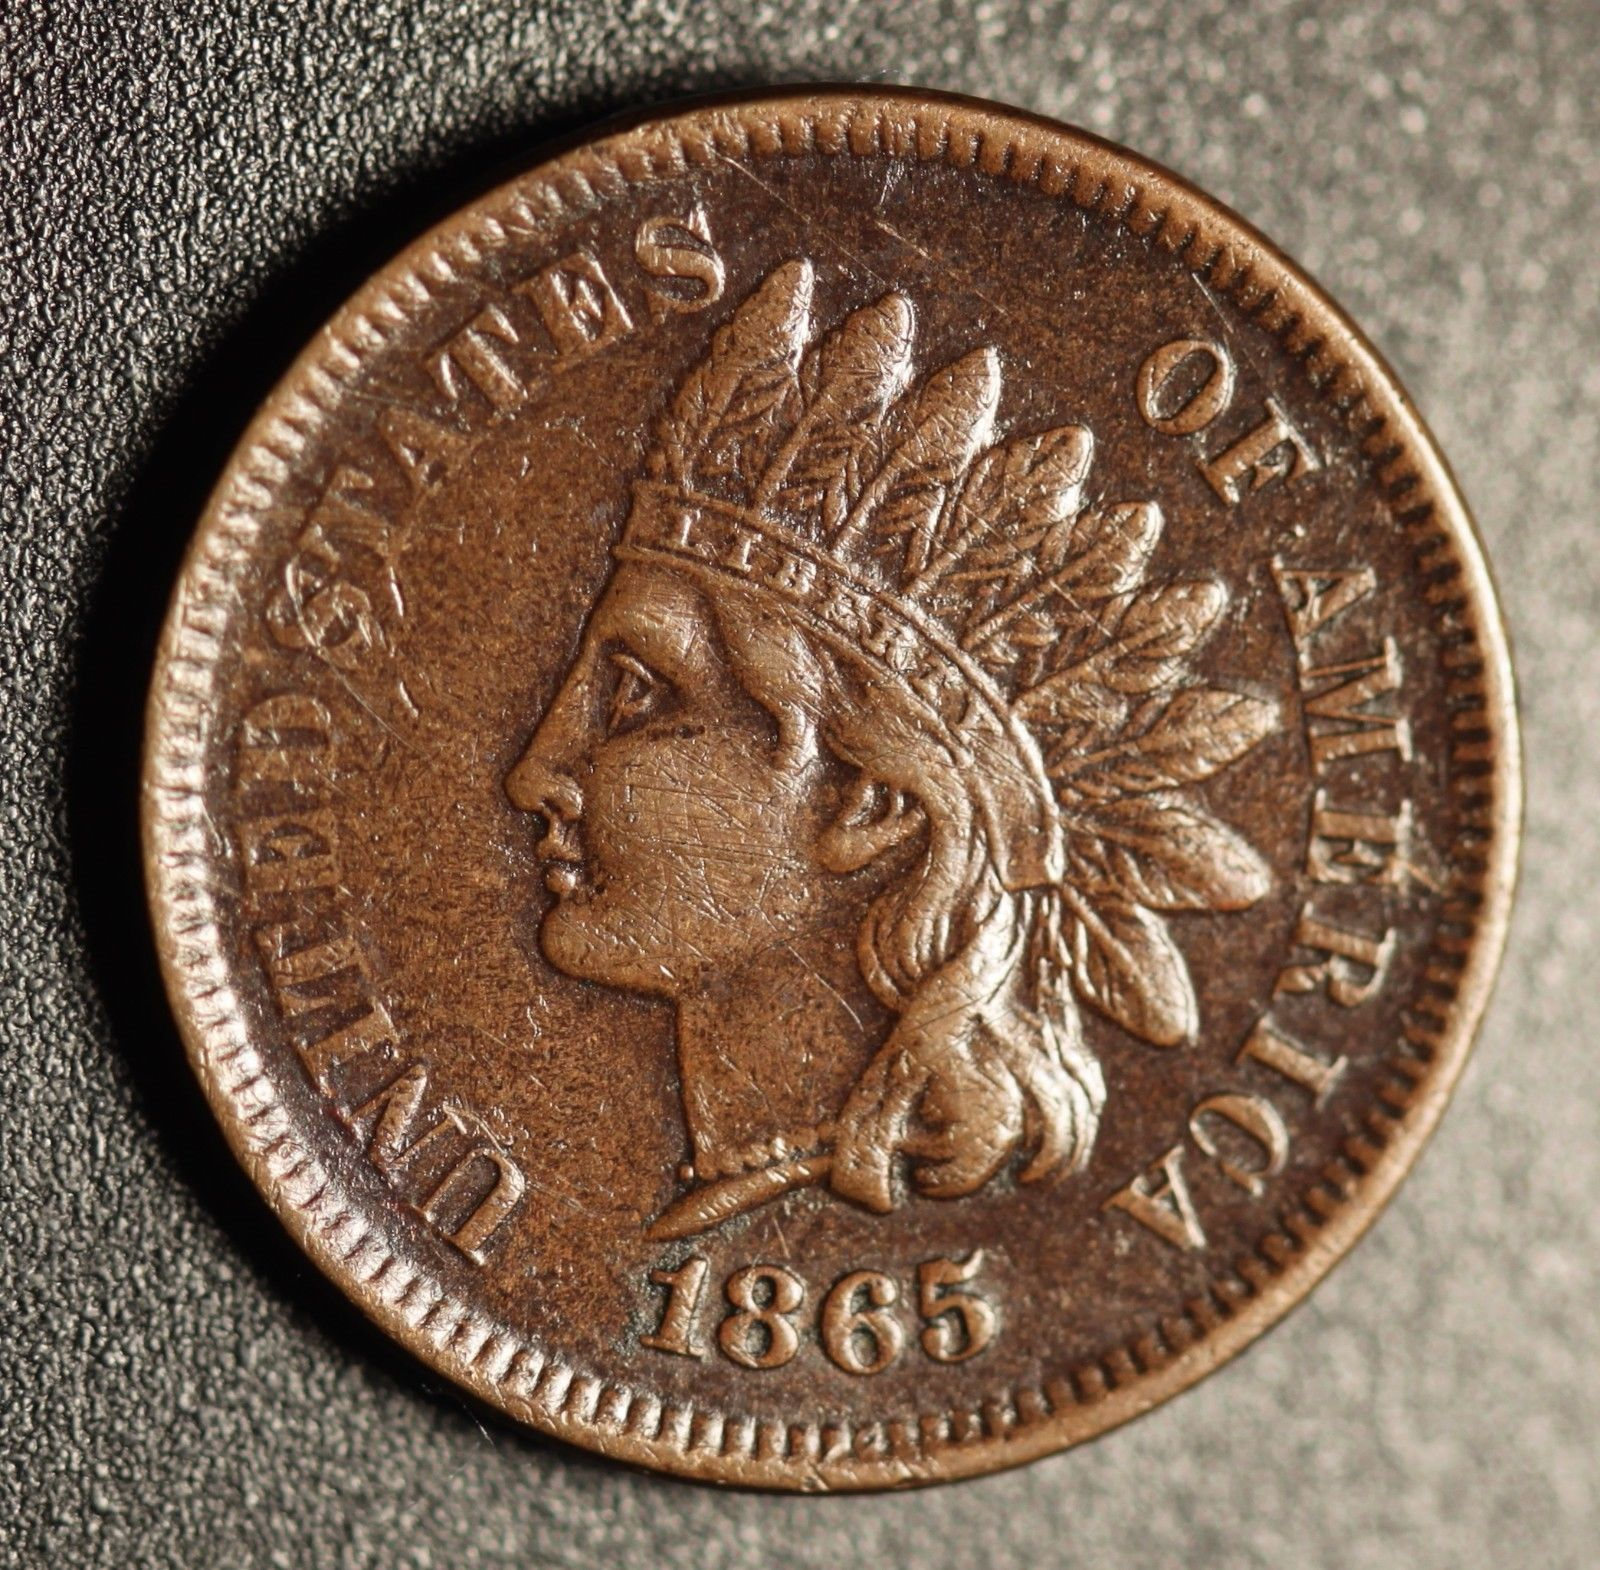 1865 ODD-002 Indian Head Penny – Photo by Ed Nathanson